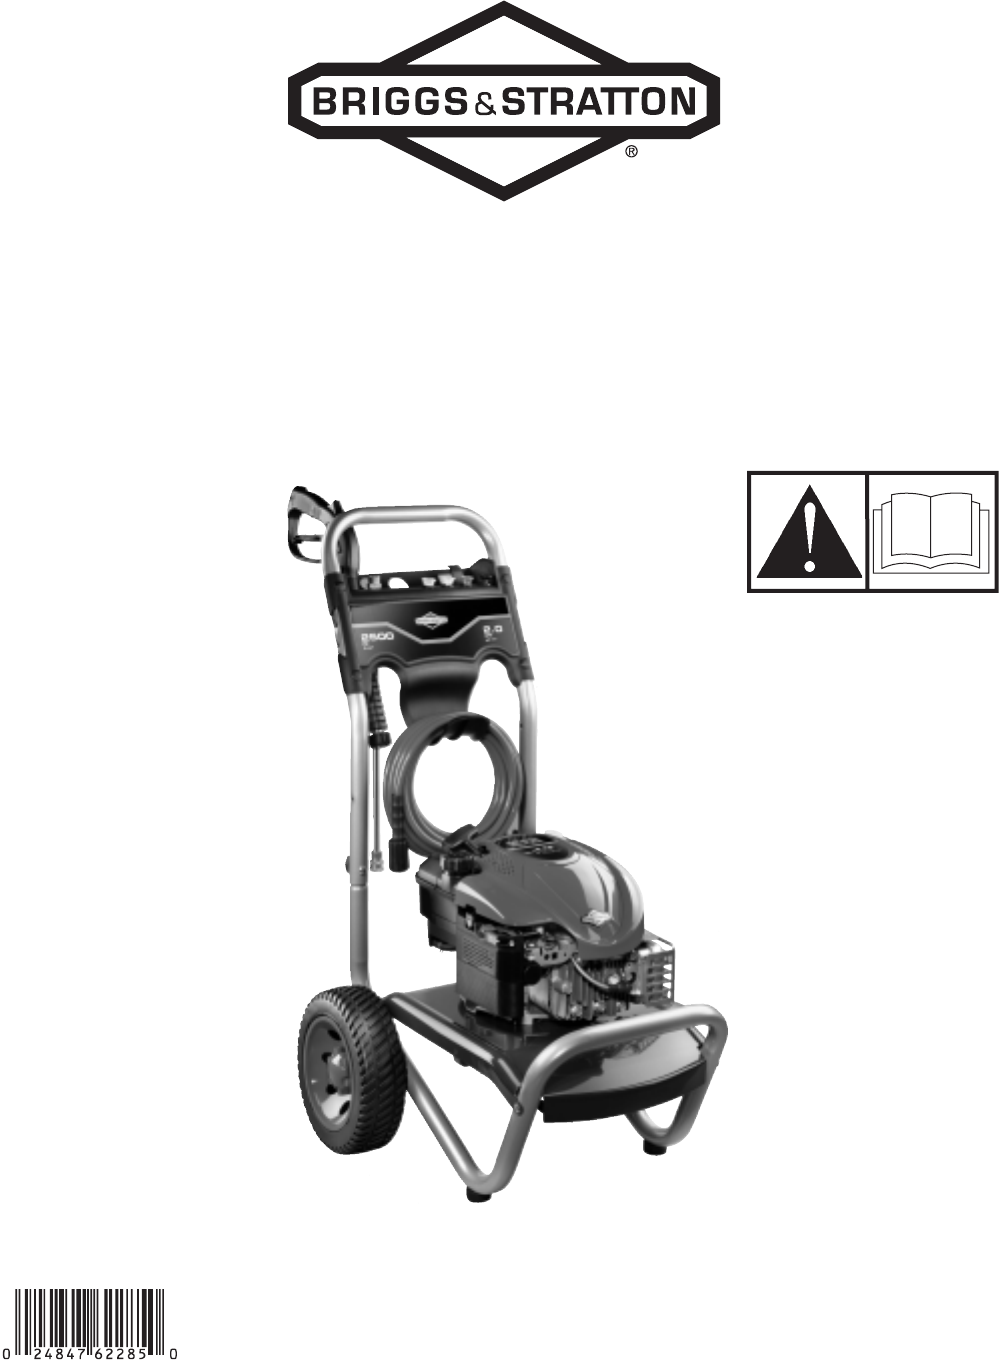 briggs stratton pressure washer 2500 psi user guide rh lawnandgarden manualsonline com Briggs and Stratton Engine Troubleshooting Briggs and Stratton Engine Numbers